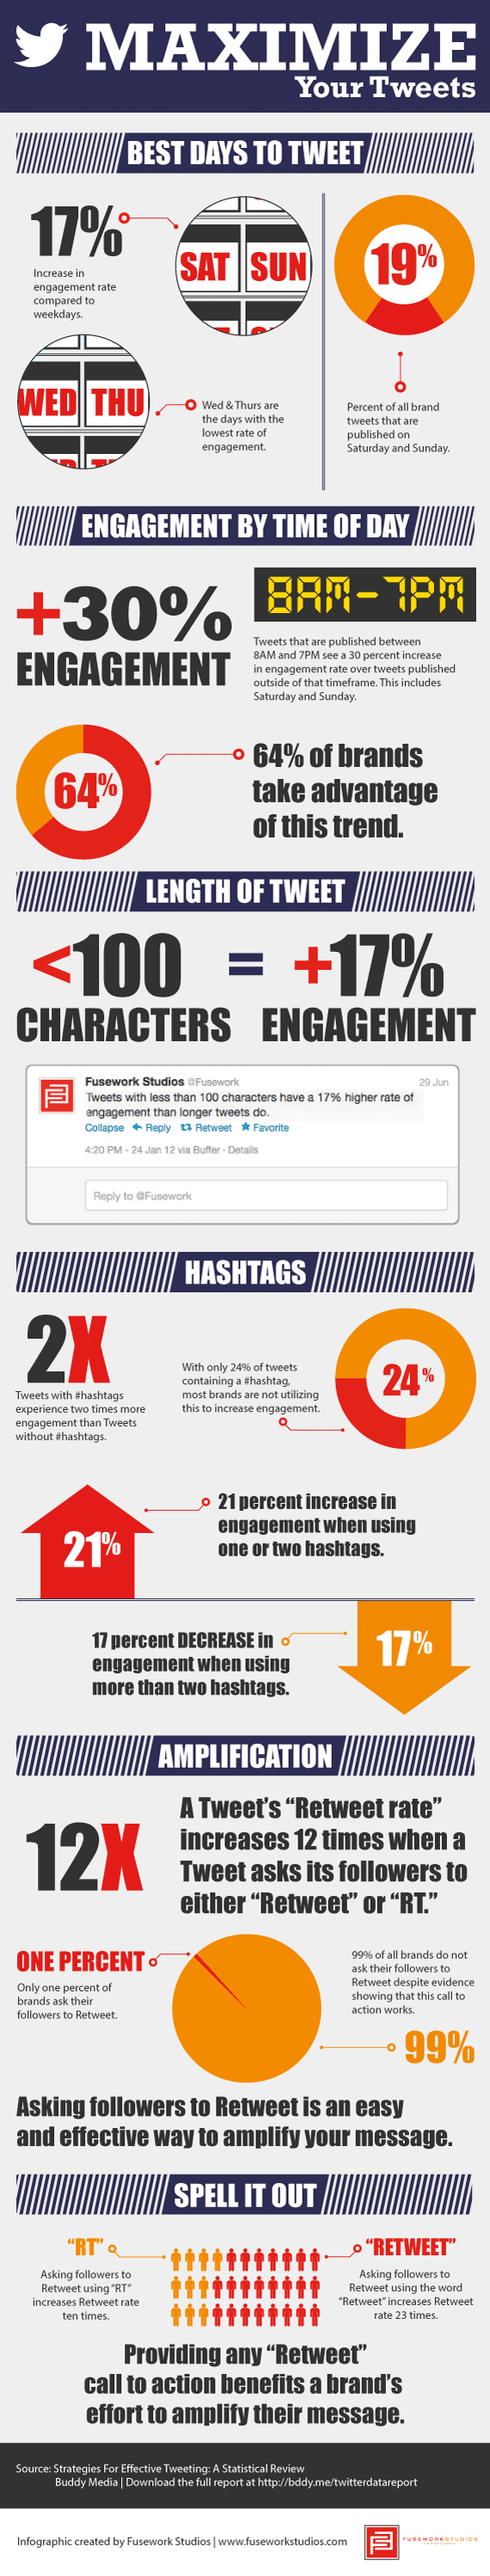 the-maximizing-your-tweets-infographic